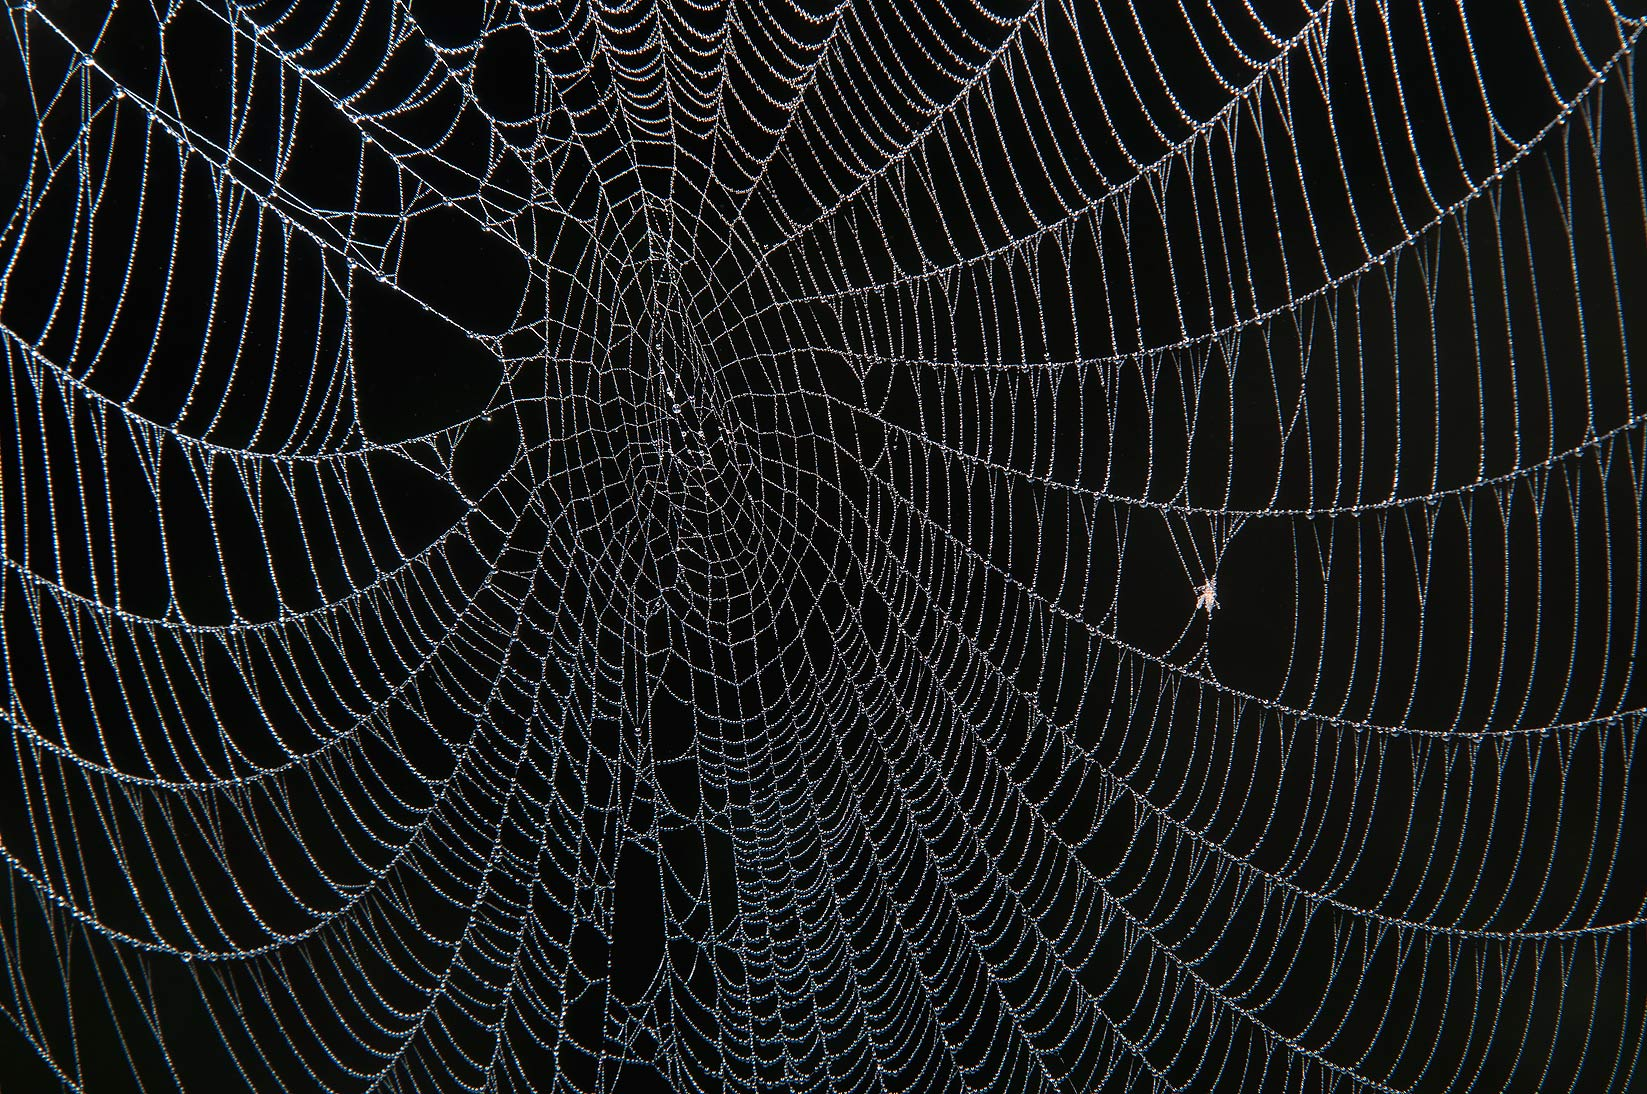 Spider web in fog in Washington-on-the-Brazos State Historic Site. Washington, Texas